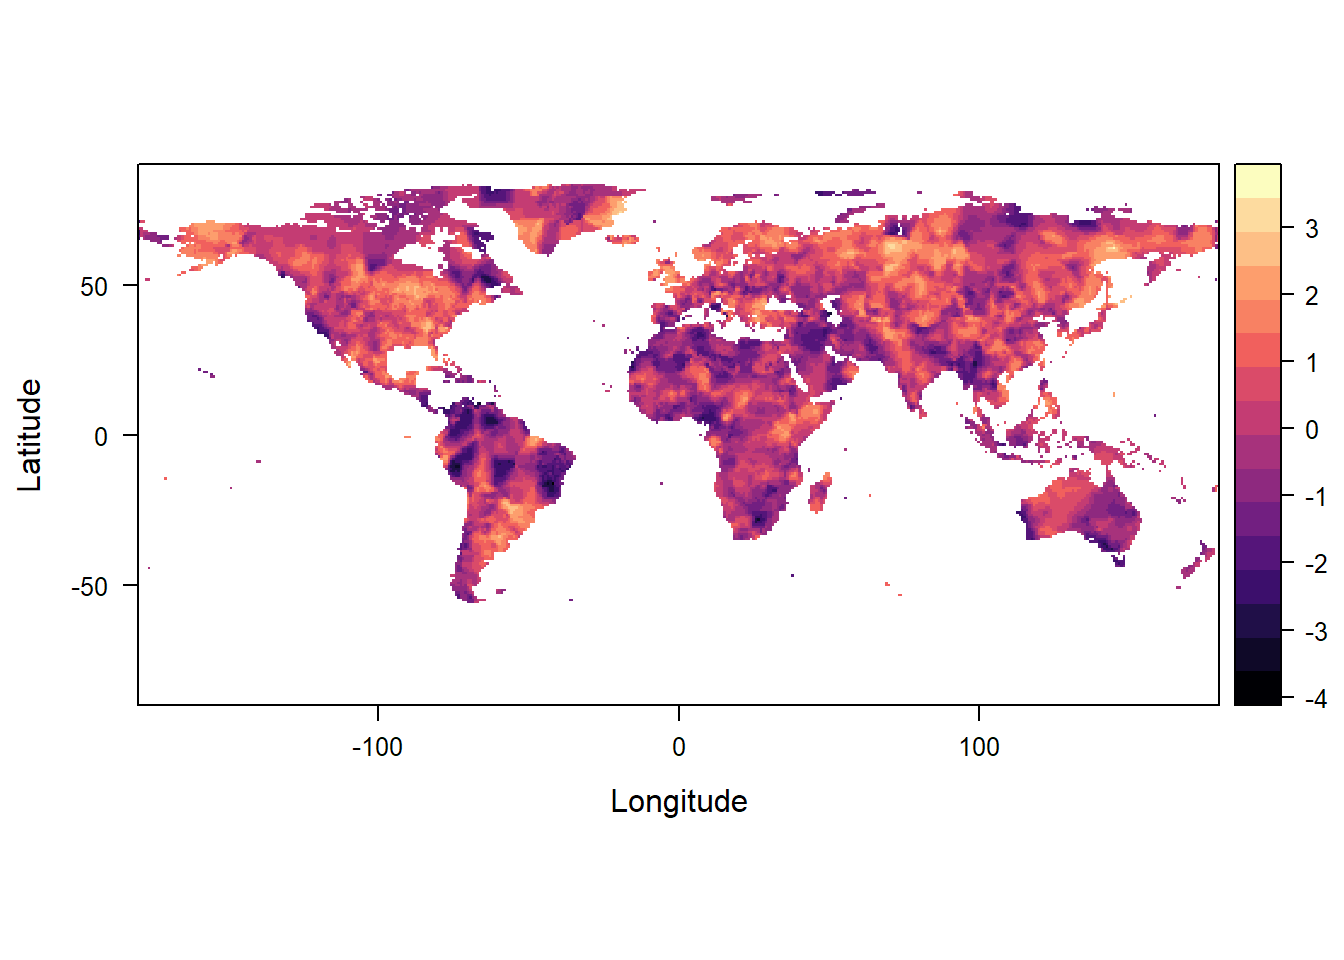 Figure 1: Standardized precipitation evapotranspiration index for 2015 with a 4 year integration period.